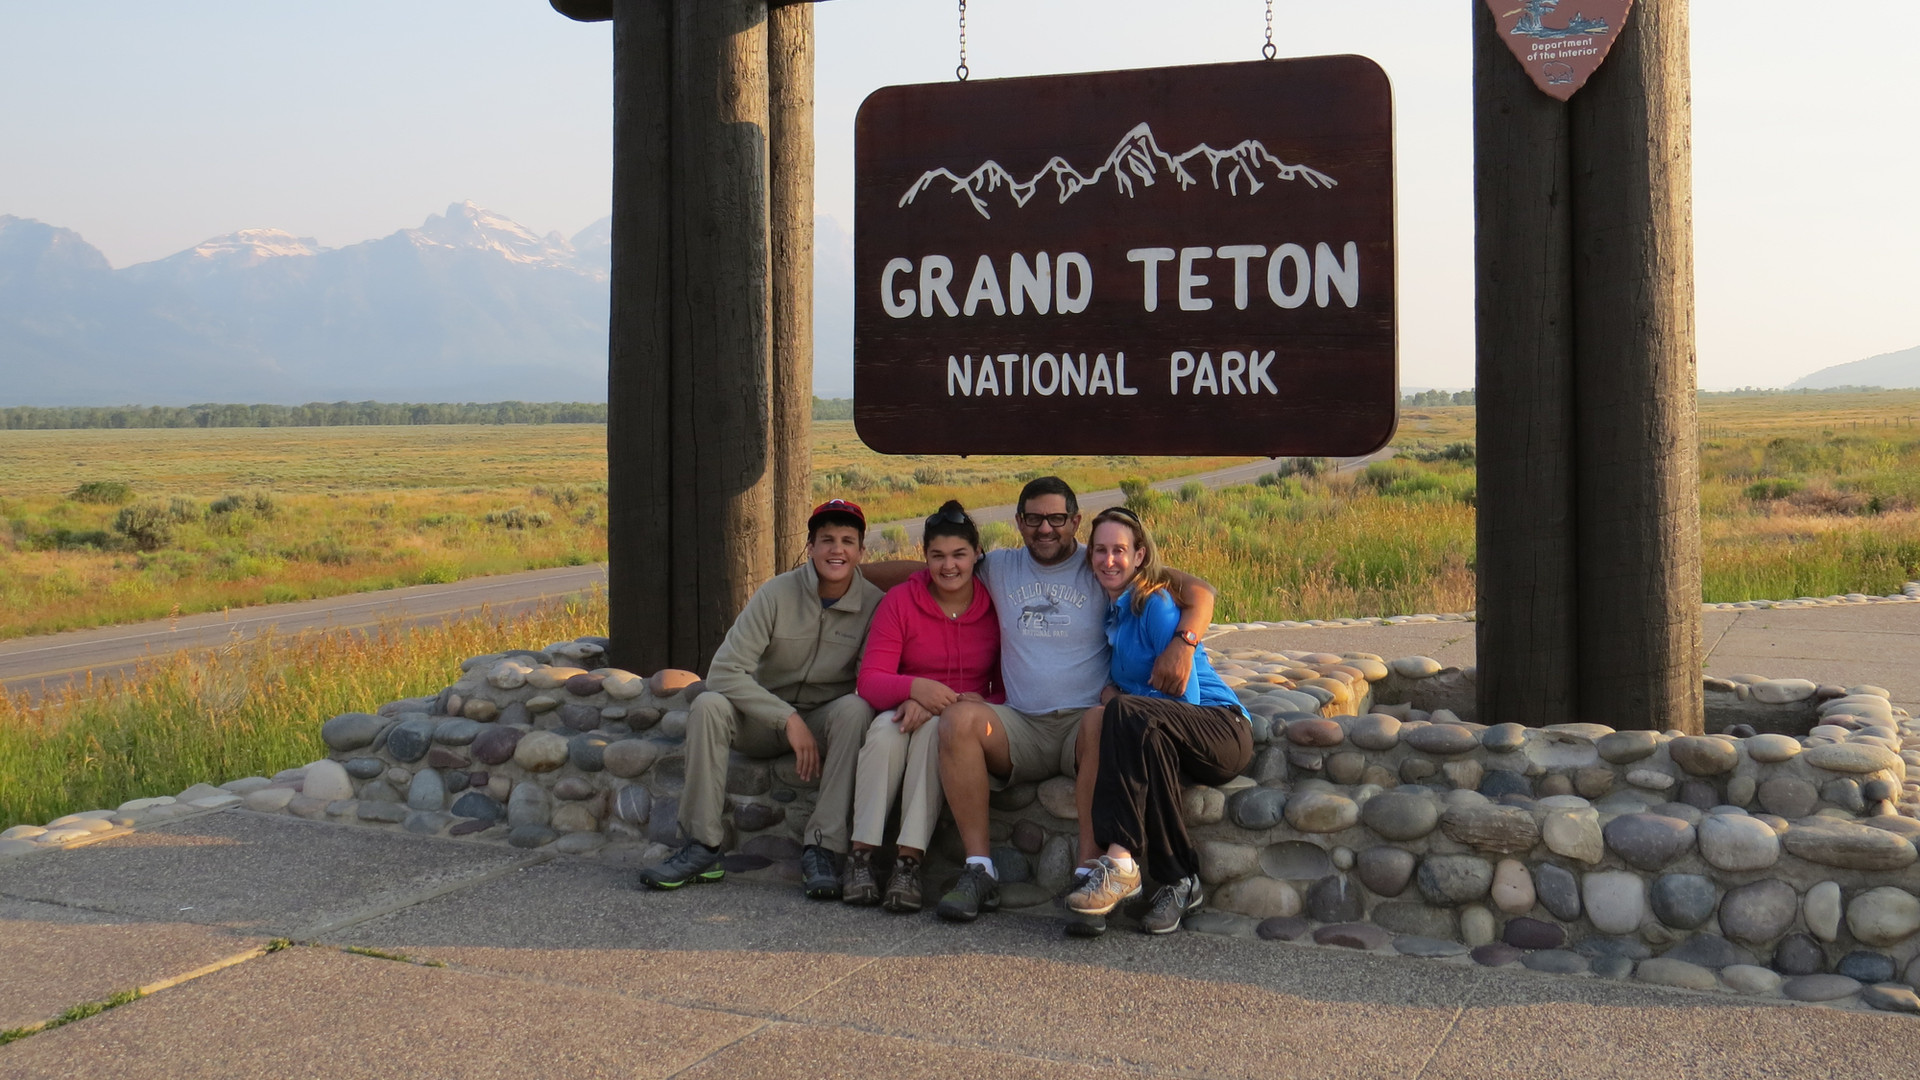 grand-teton-park-private-tour.JPG